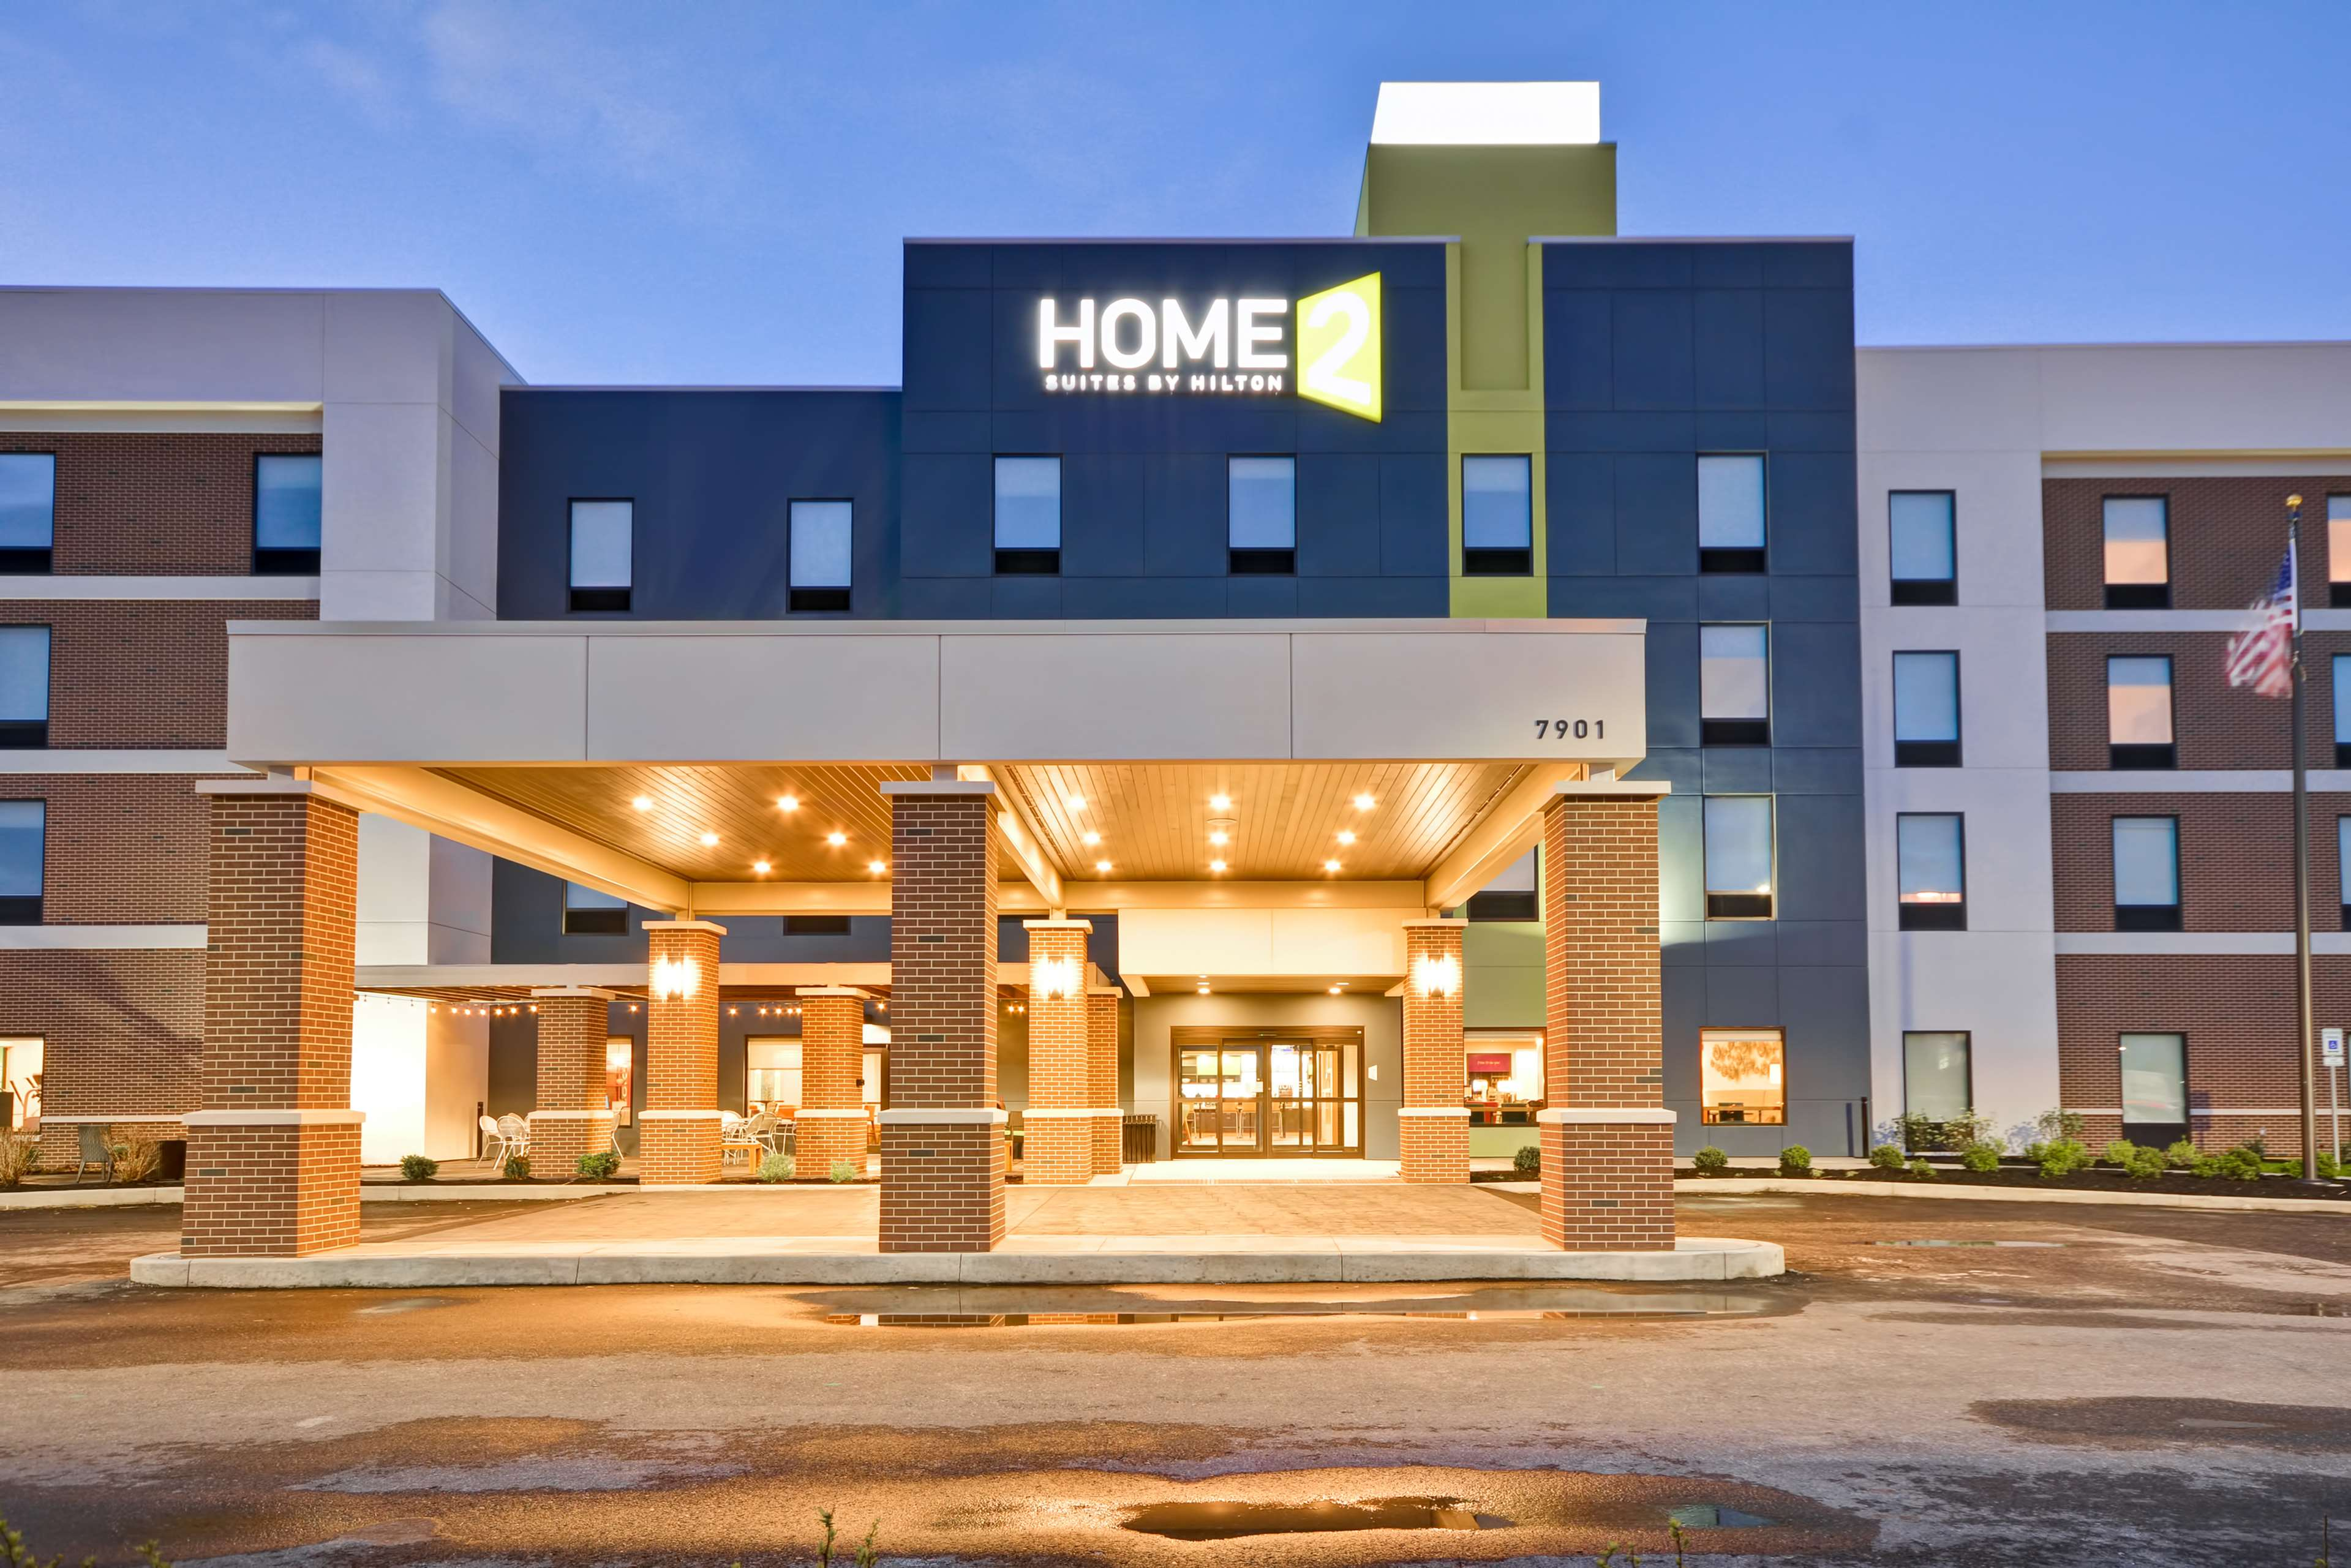 Home2 Suites By Hilton Evansville image 0